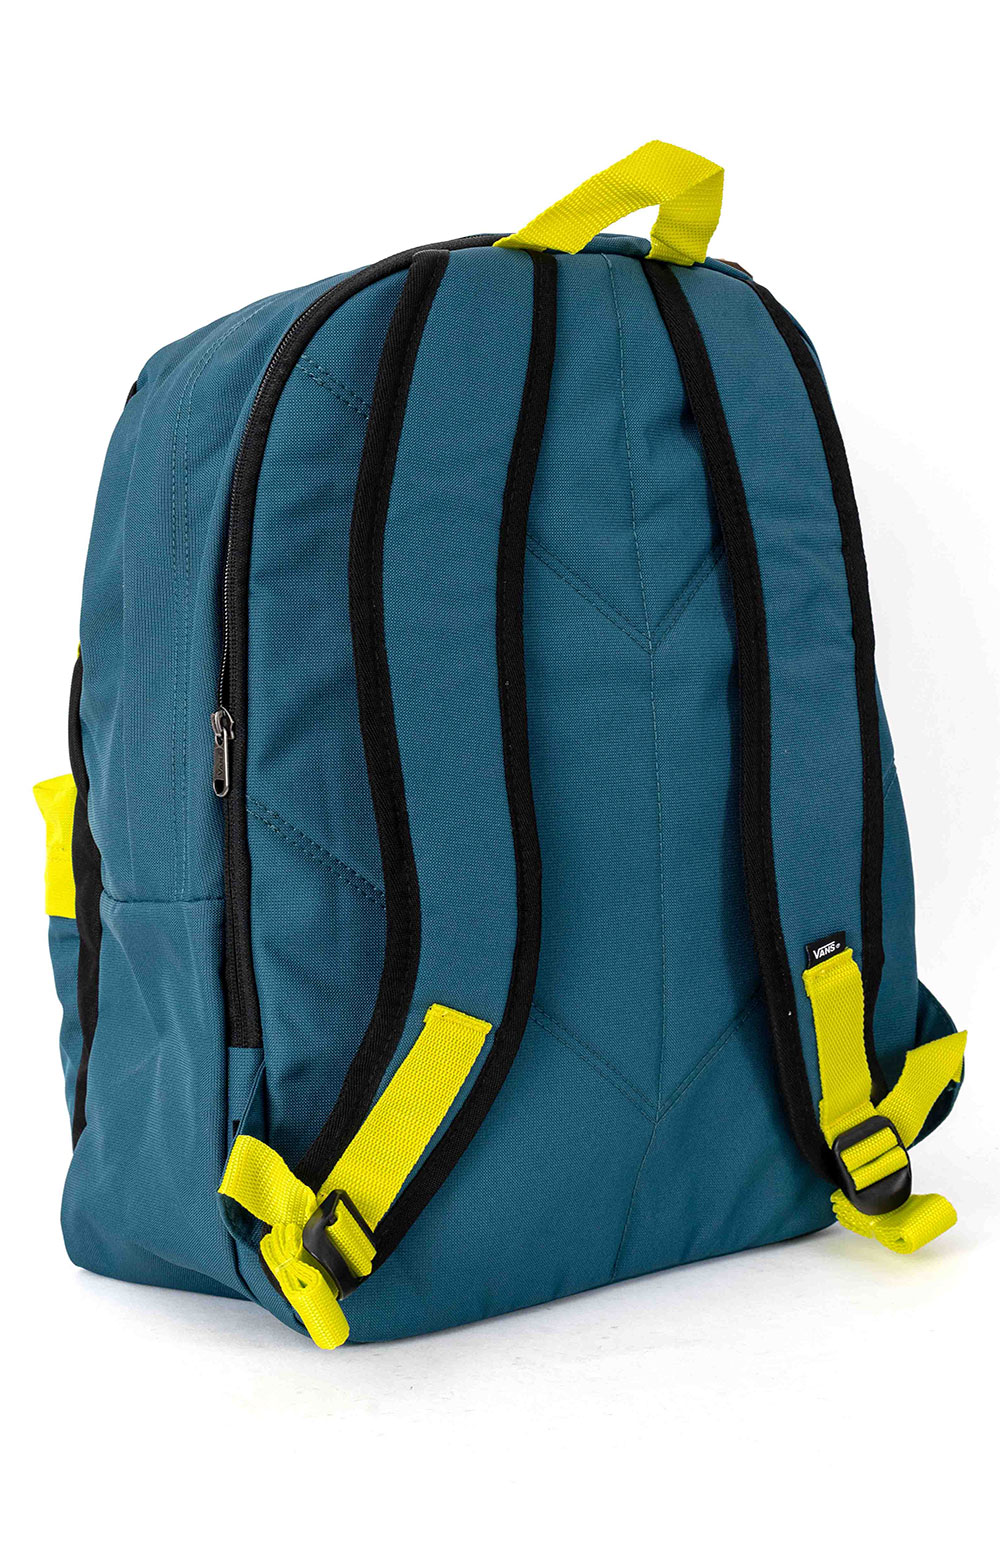 Old Skool Plus II Backpack - Stargazer 3